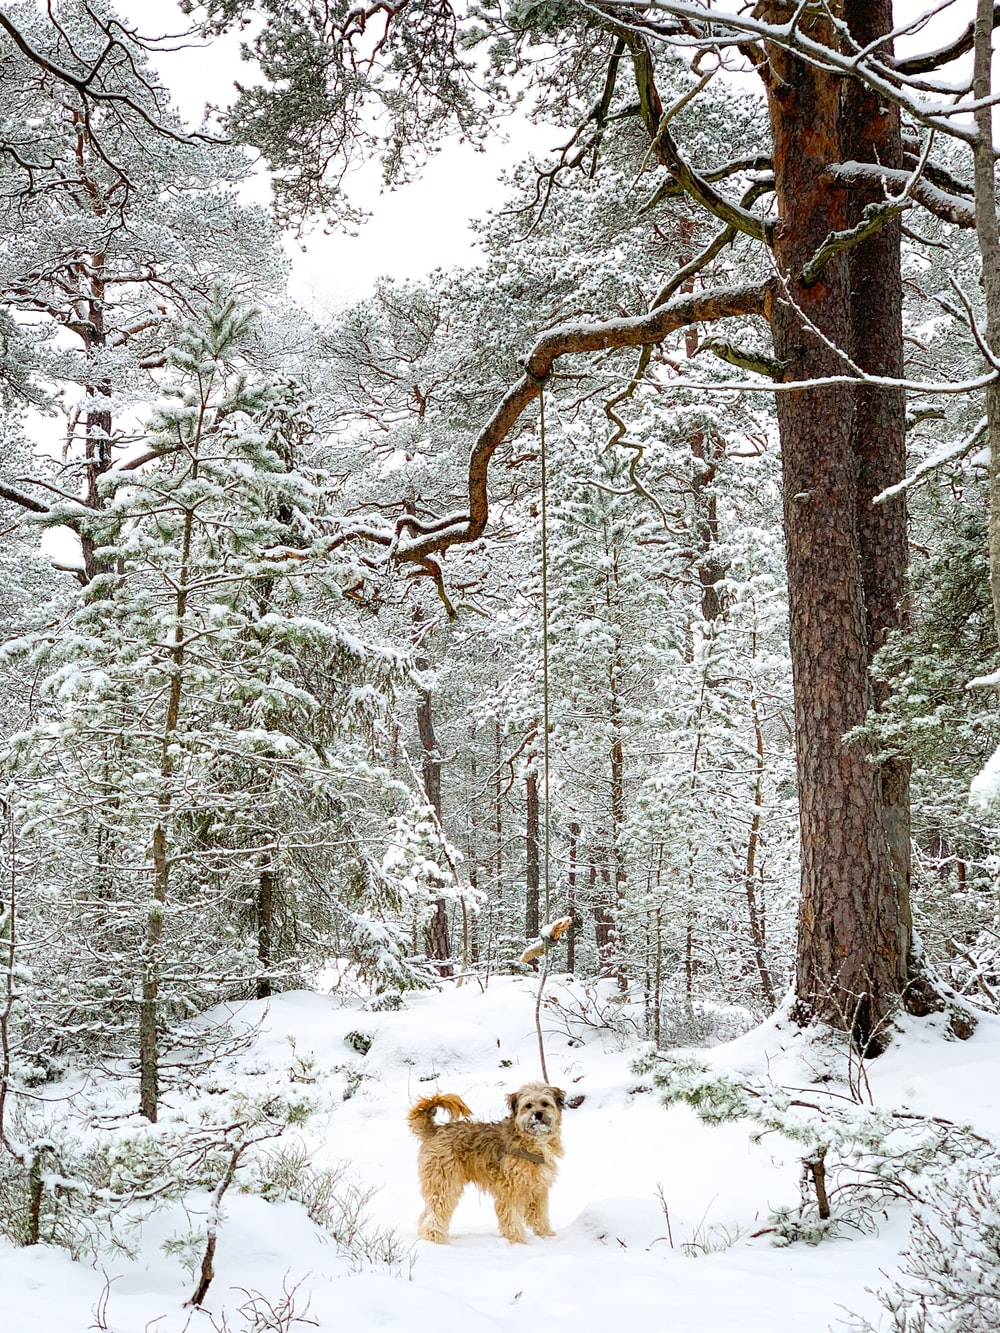 brown dog standing near trees